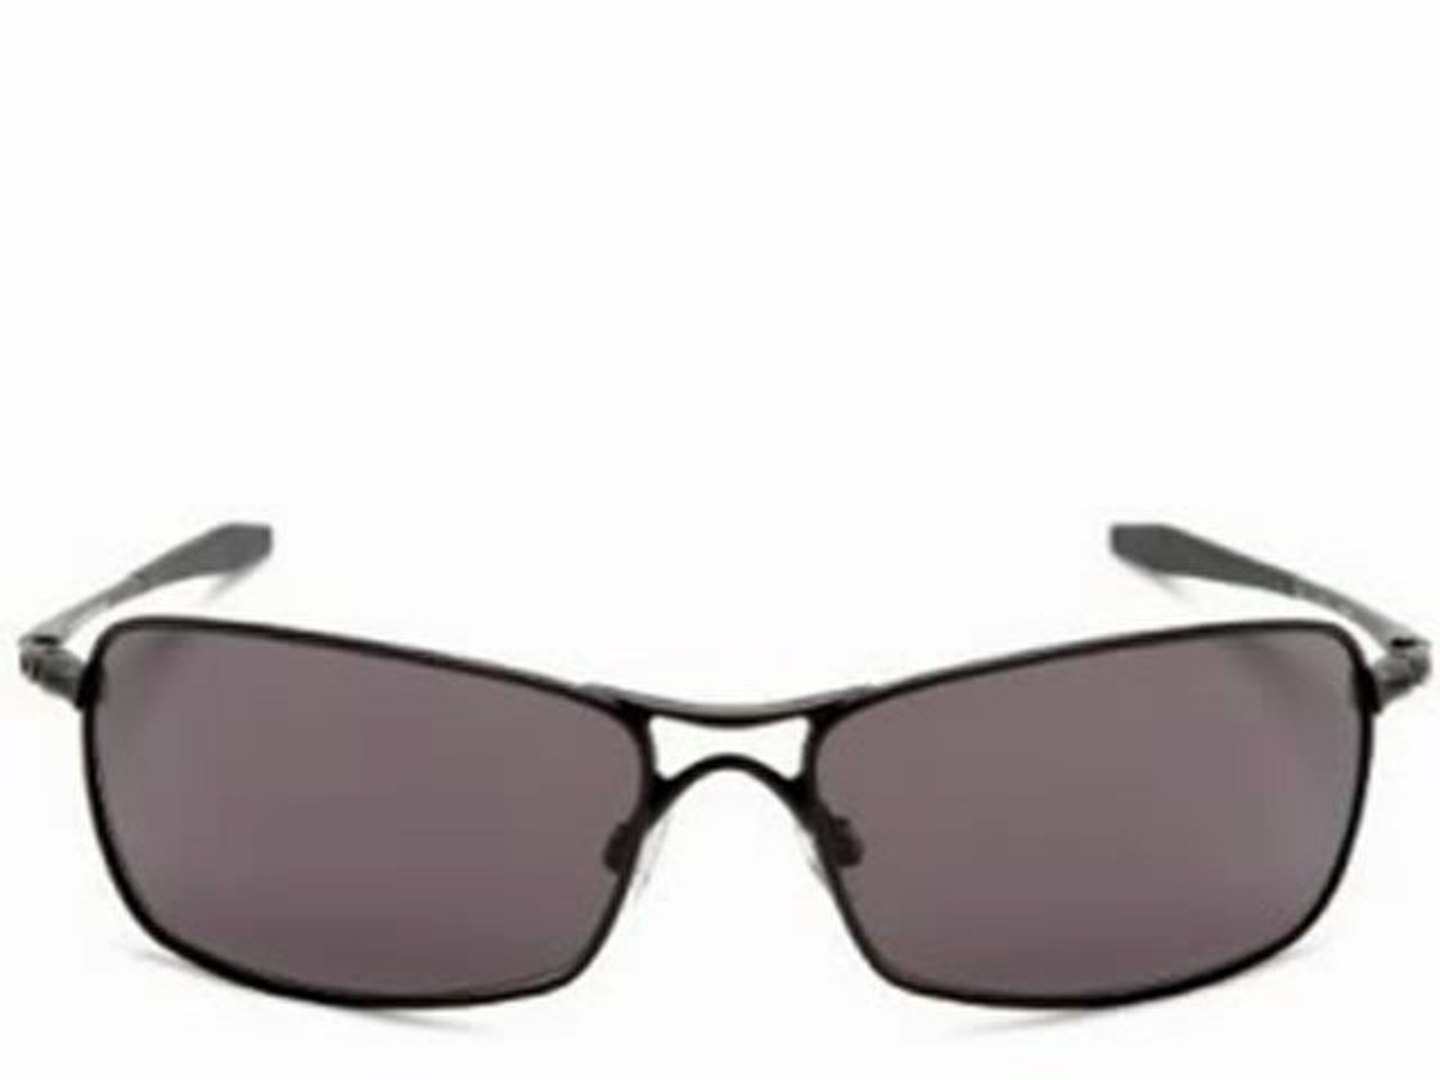 Oakley Men's Crosshair 2.0 Metal Sunglasses